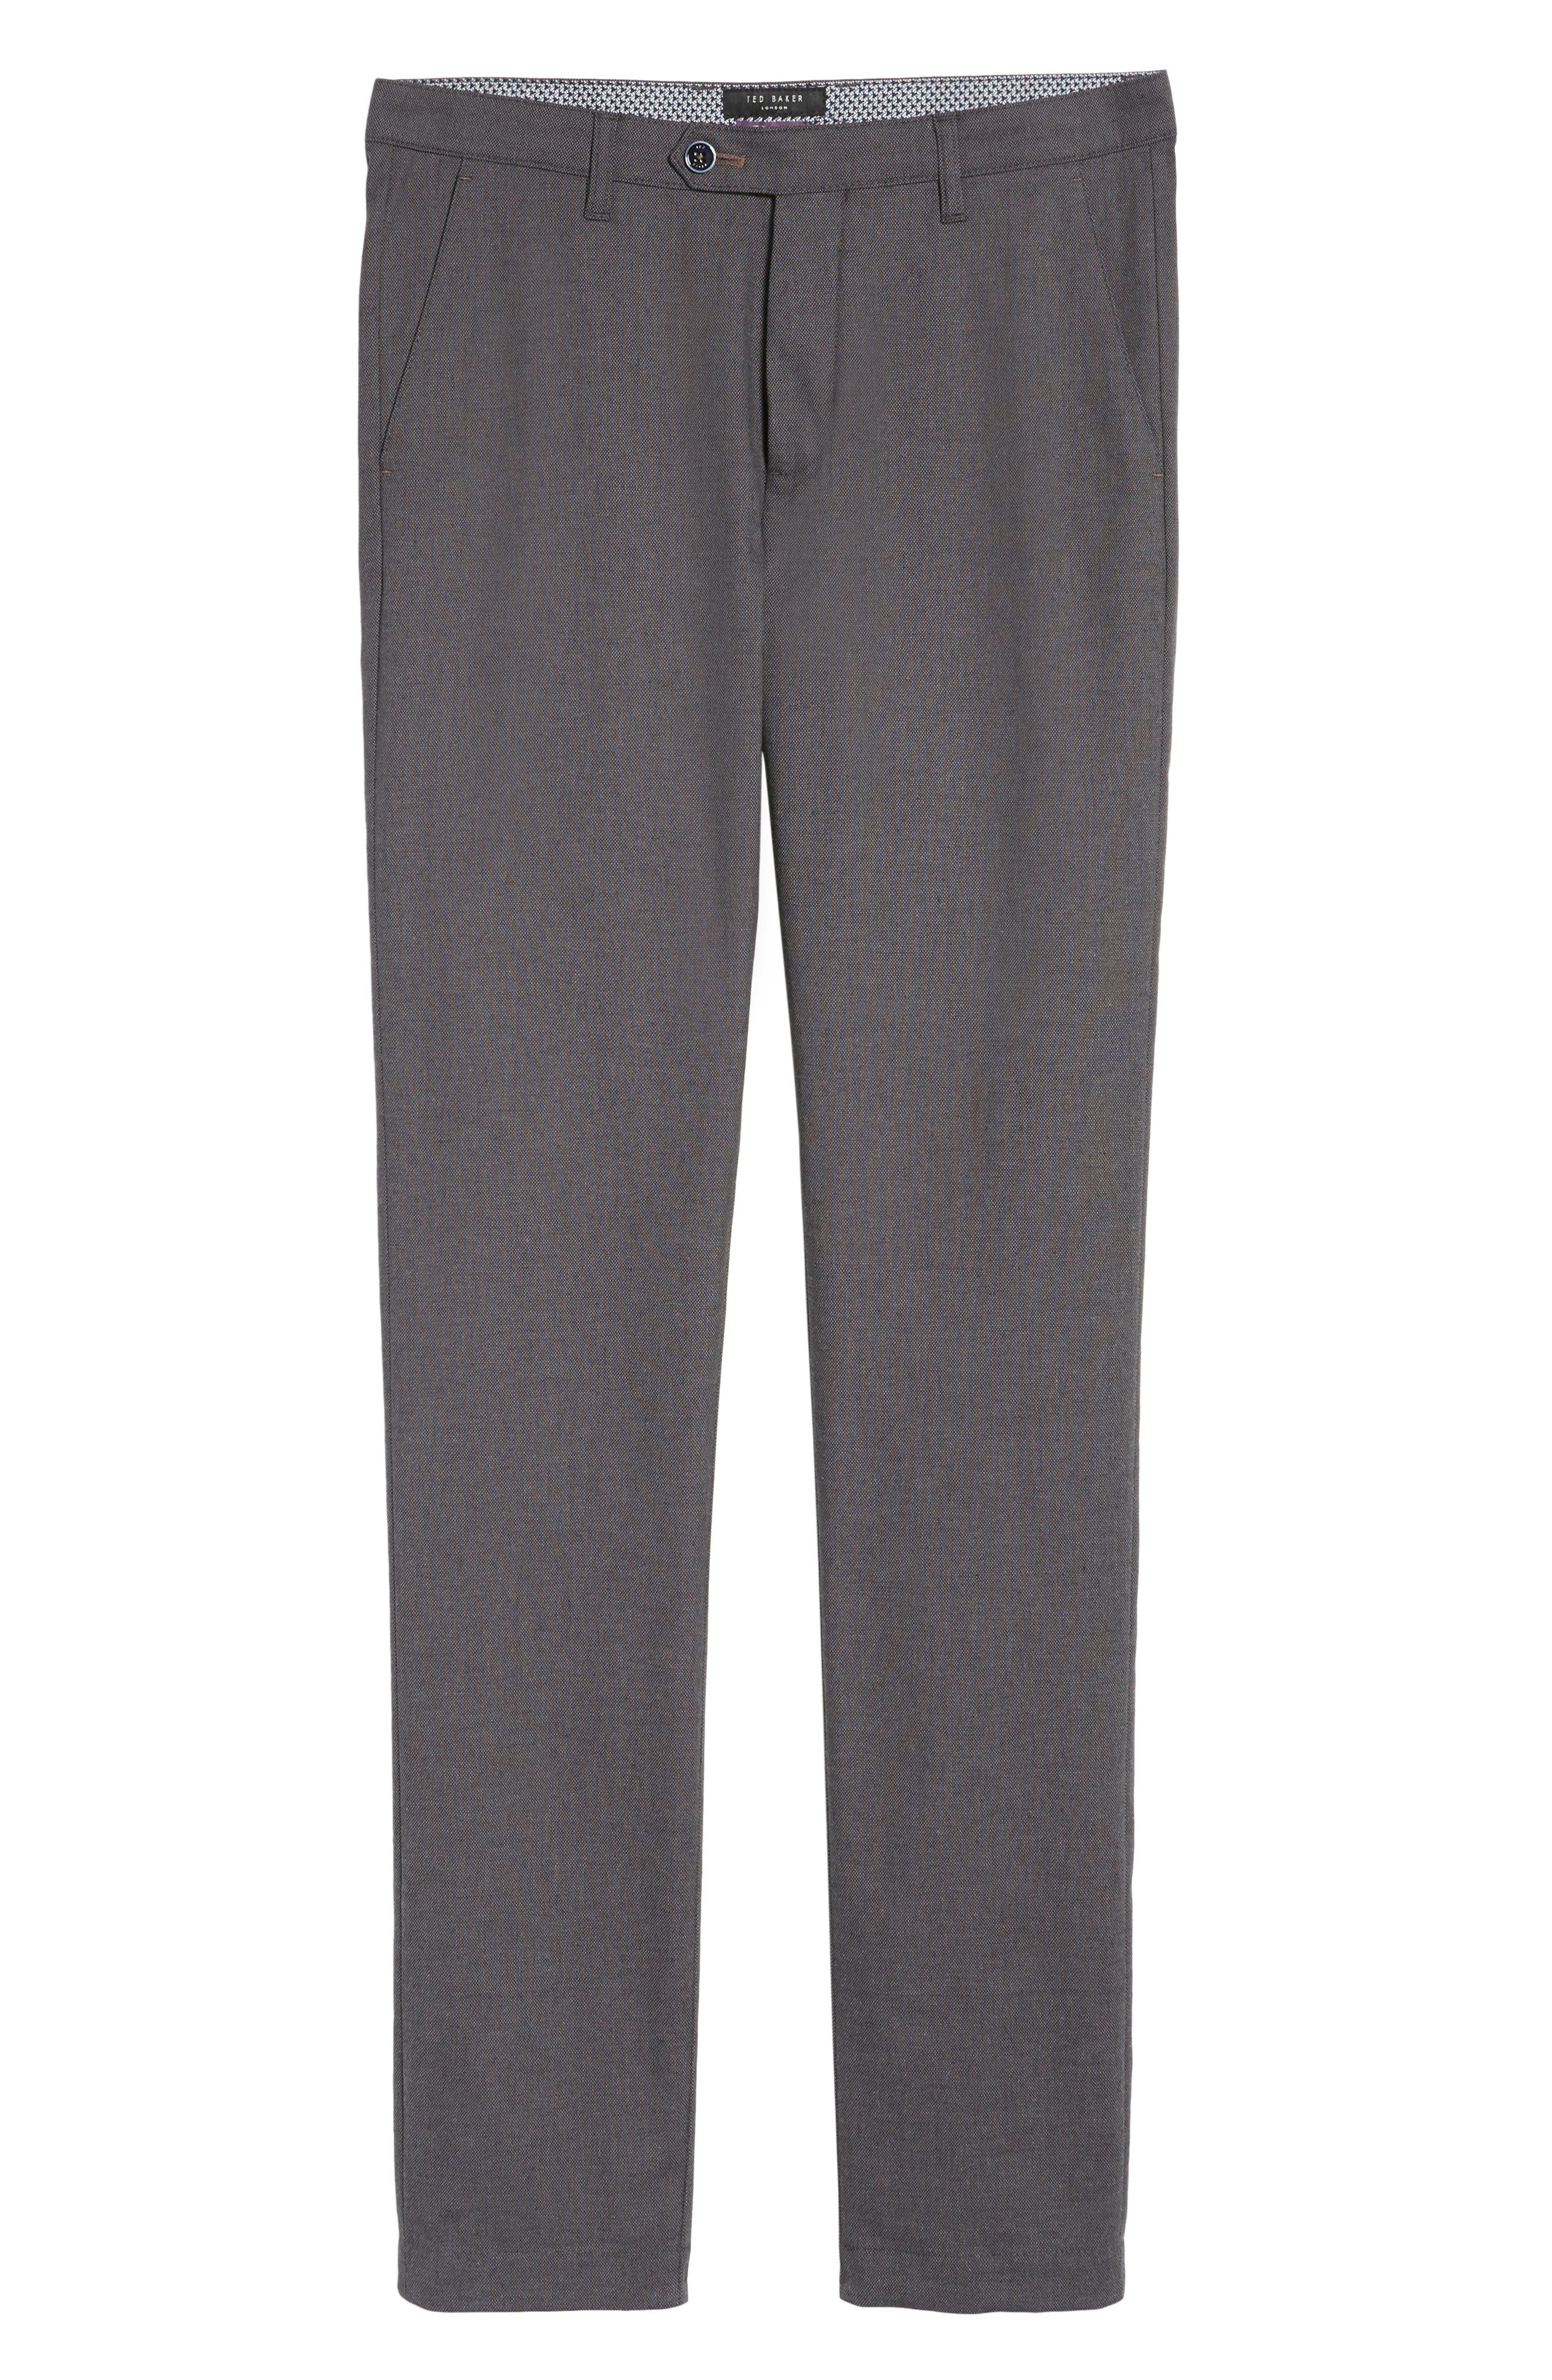 Holldet Flat Front Stretch Solid Cotton Pants,                             Alternate thumbnail 6, color,                             020